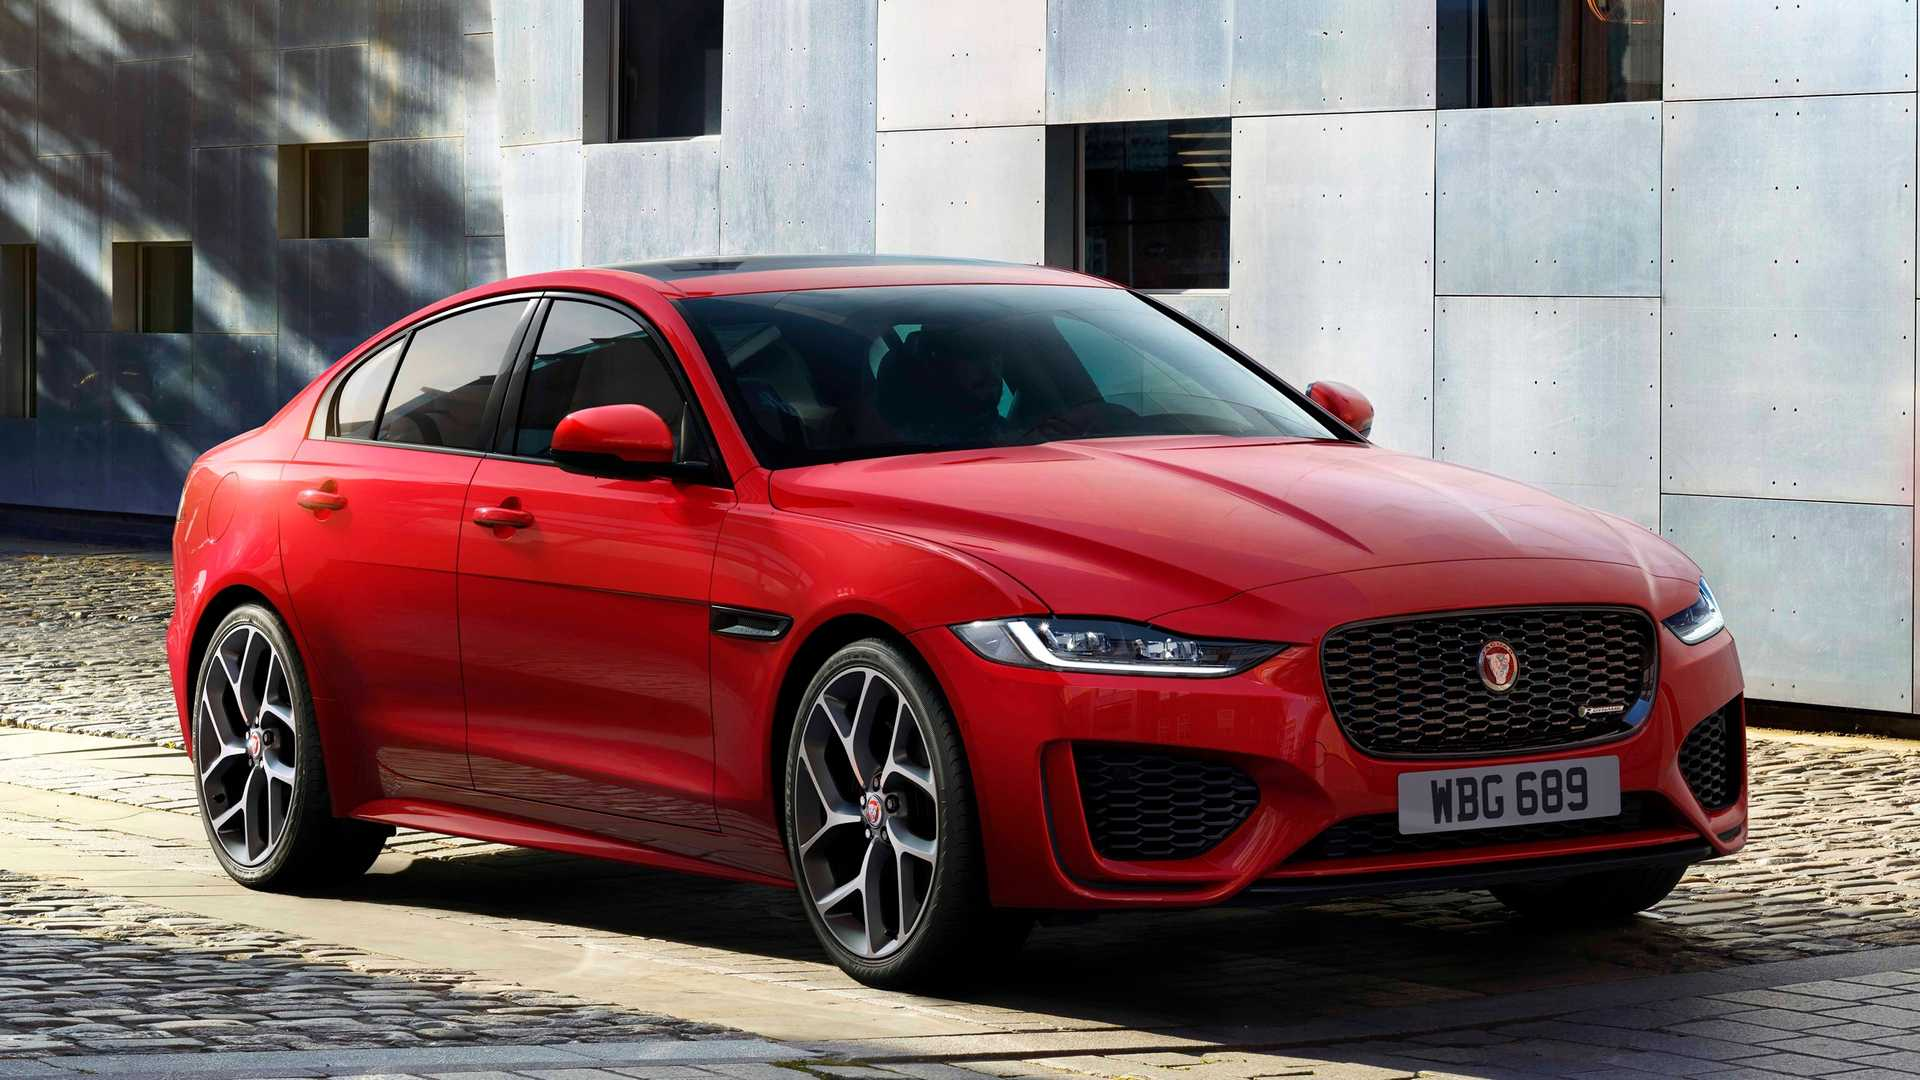 11 New Jaguar Xe 2020 Pictures